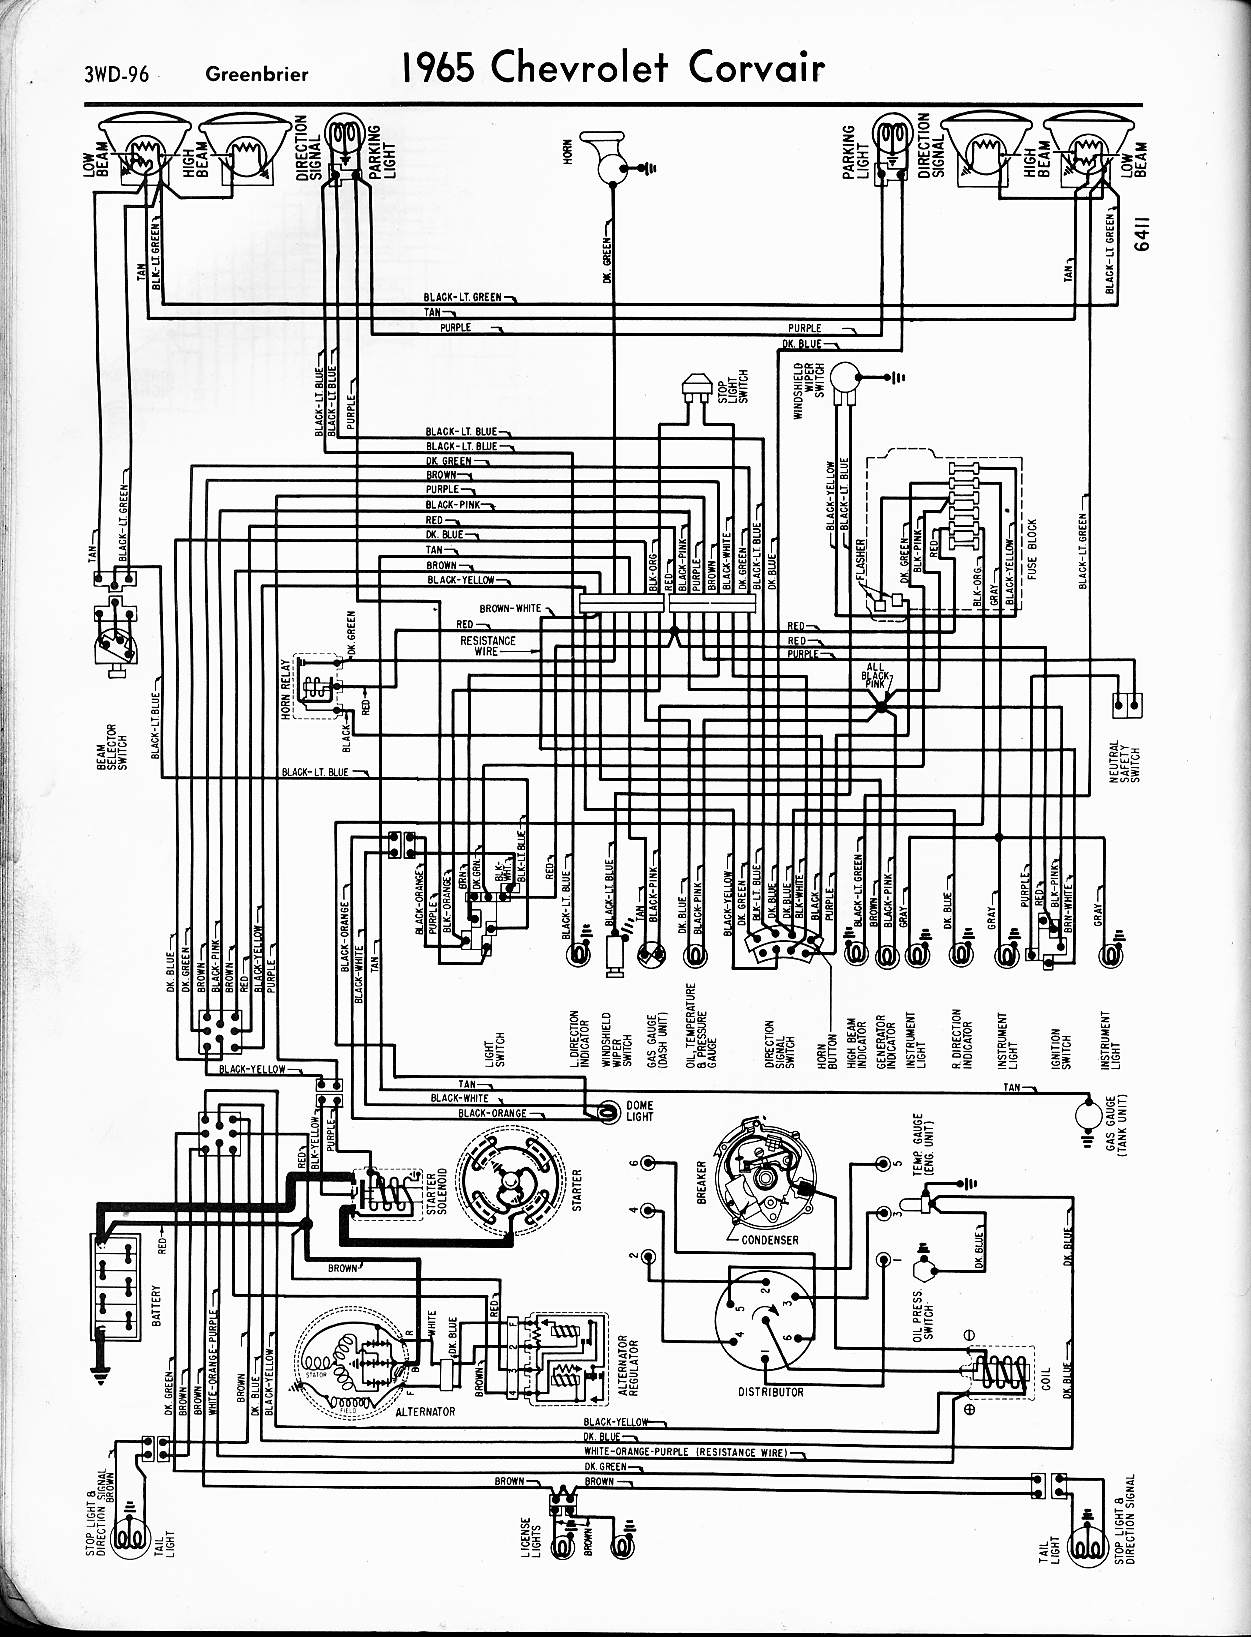 1959 cadillac wiring diagram  cadillac  auto fuse box diagram